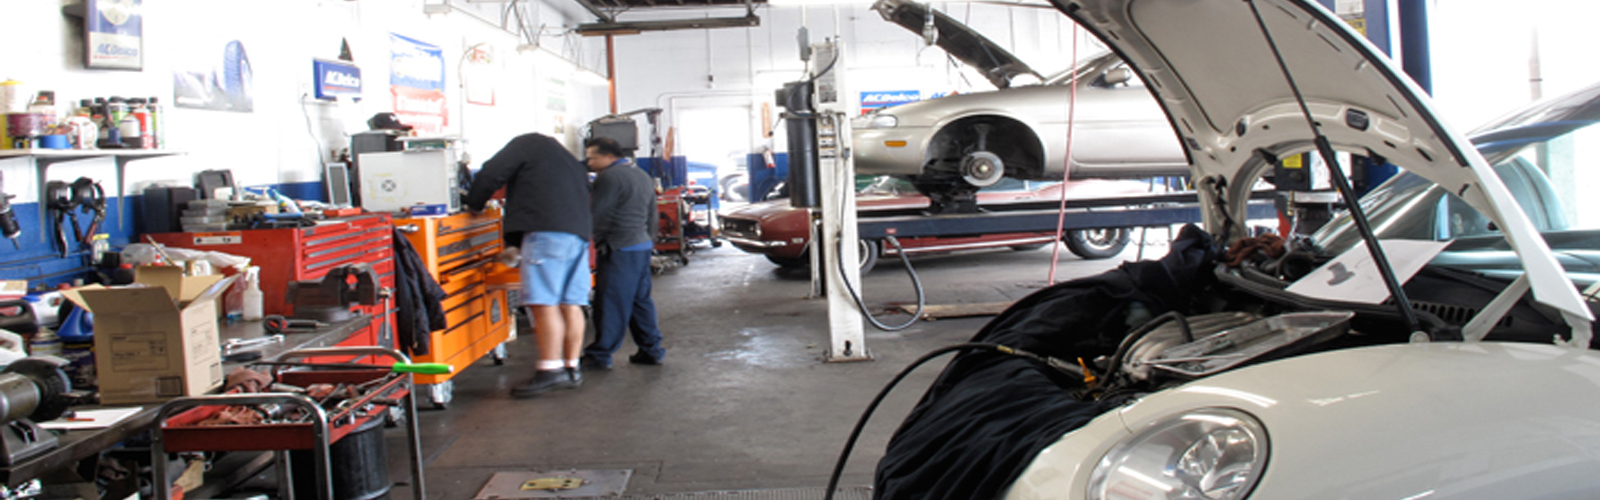 Ed's Automotive Center | Service Bays